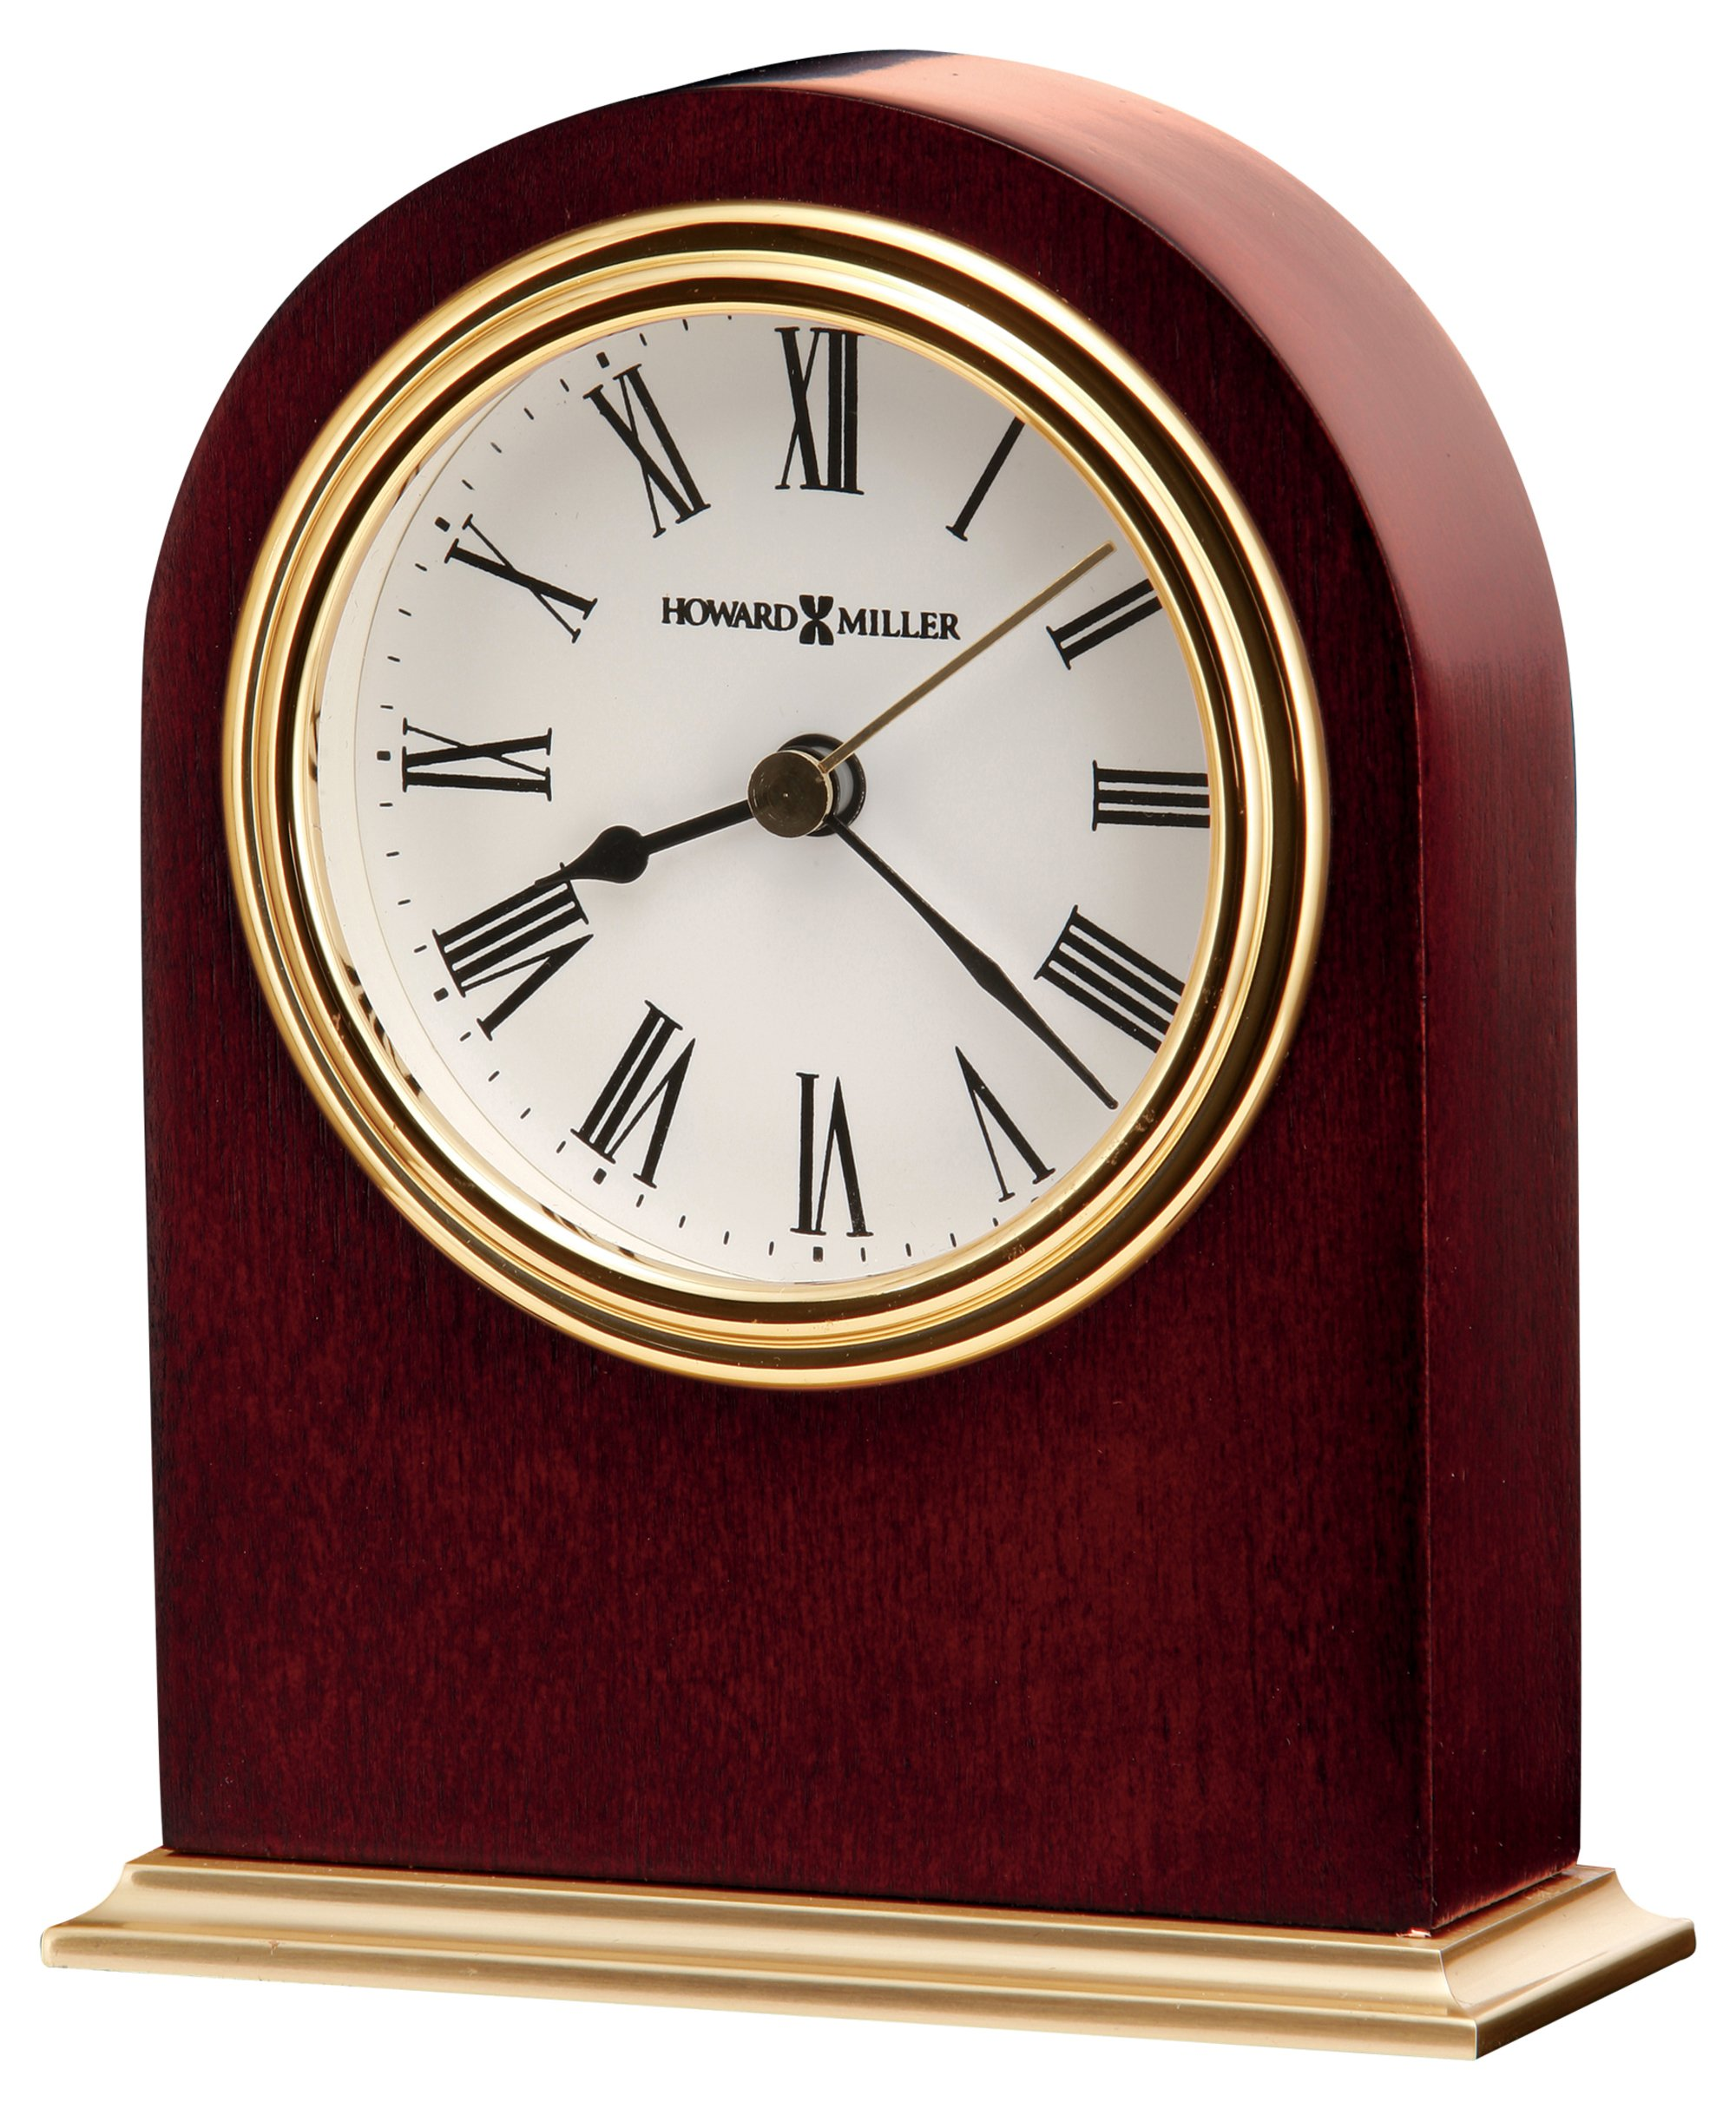 Howard Miller 645-401 Craven Table Clock